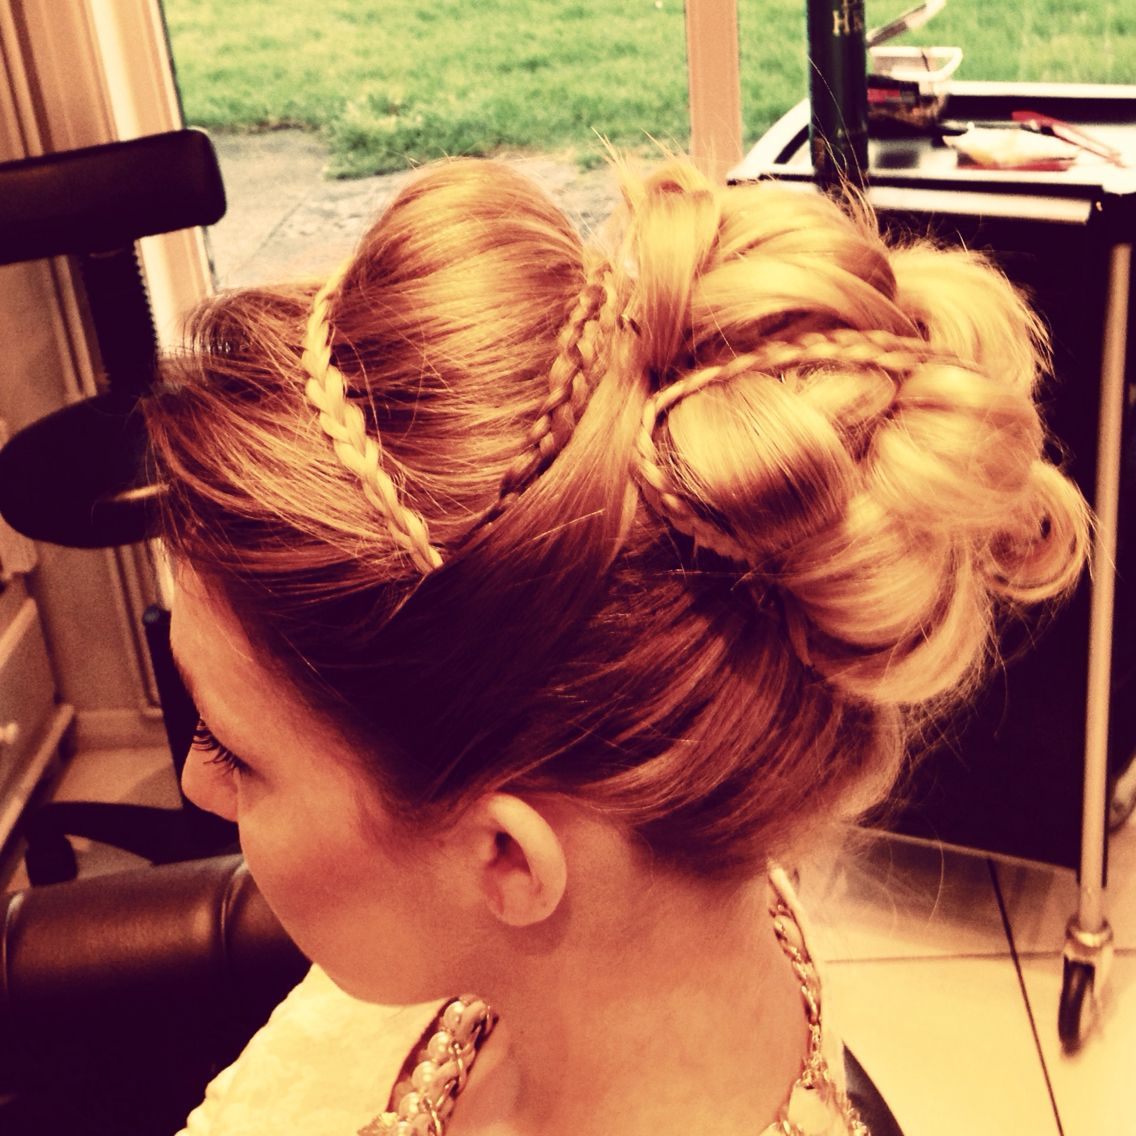 Hair up ideas check out my page facebookclare